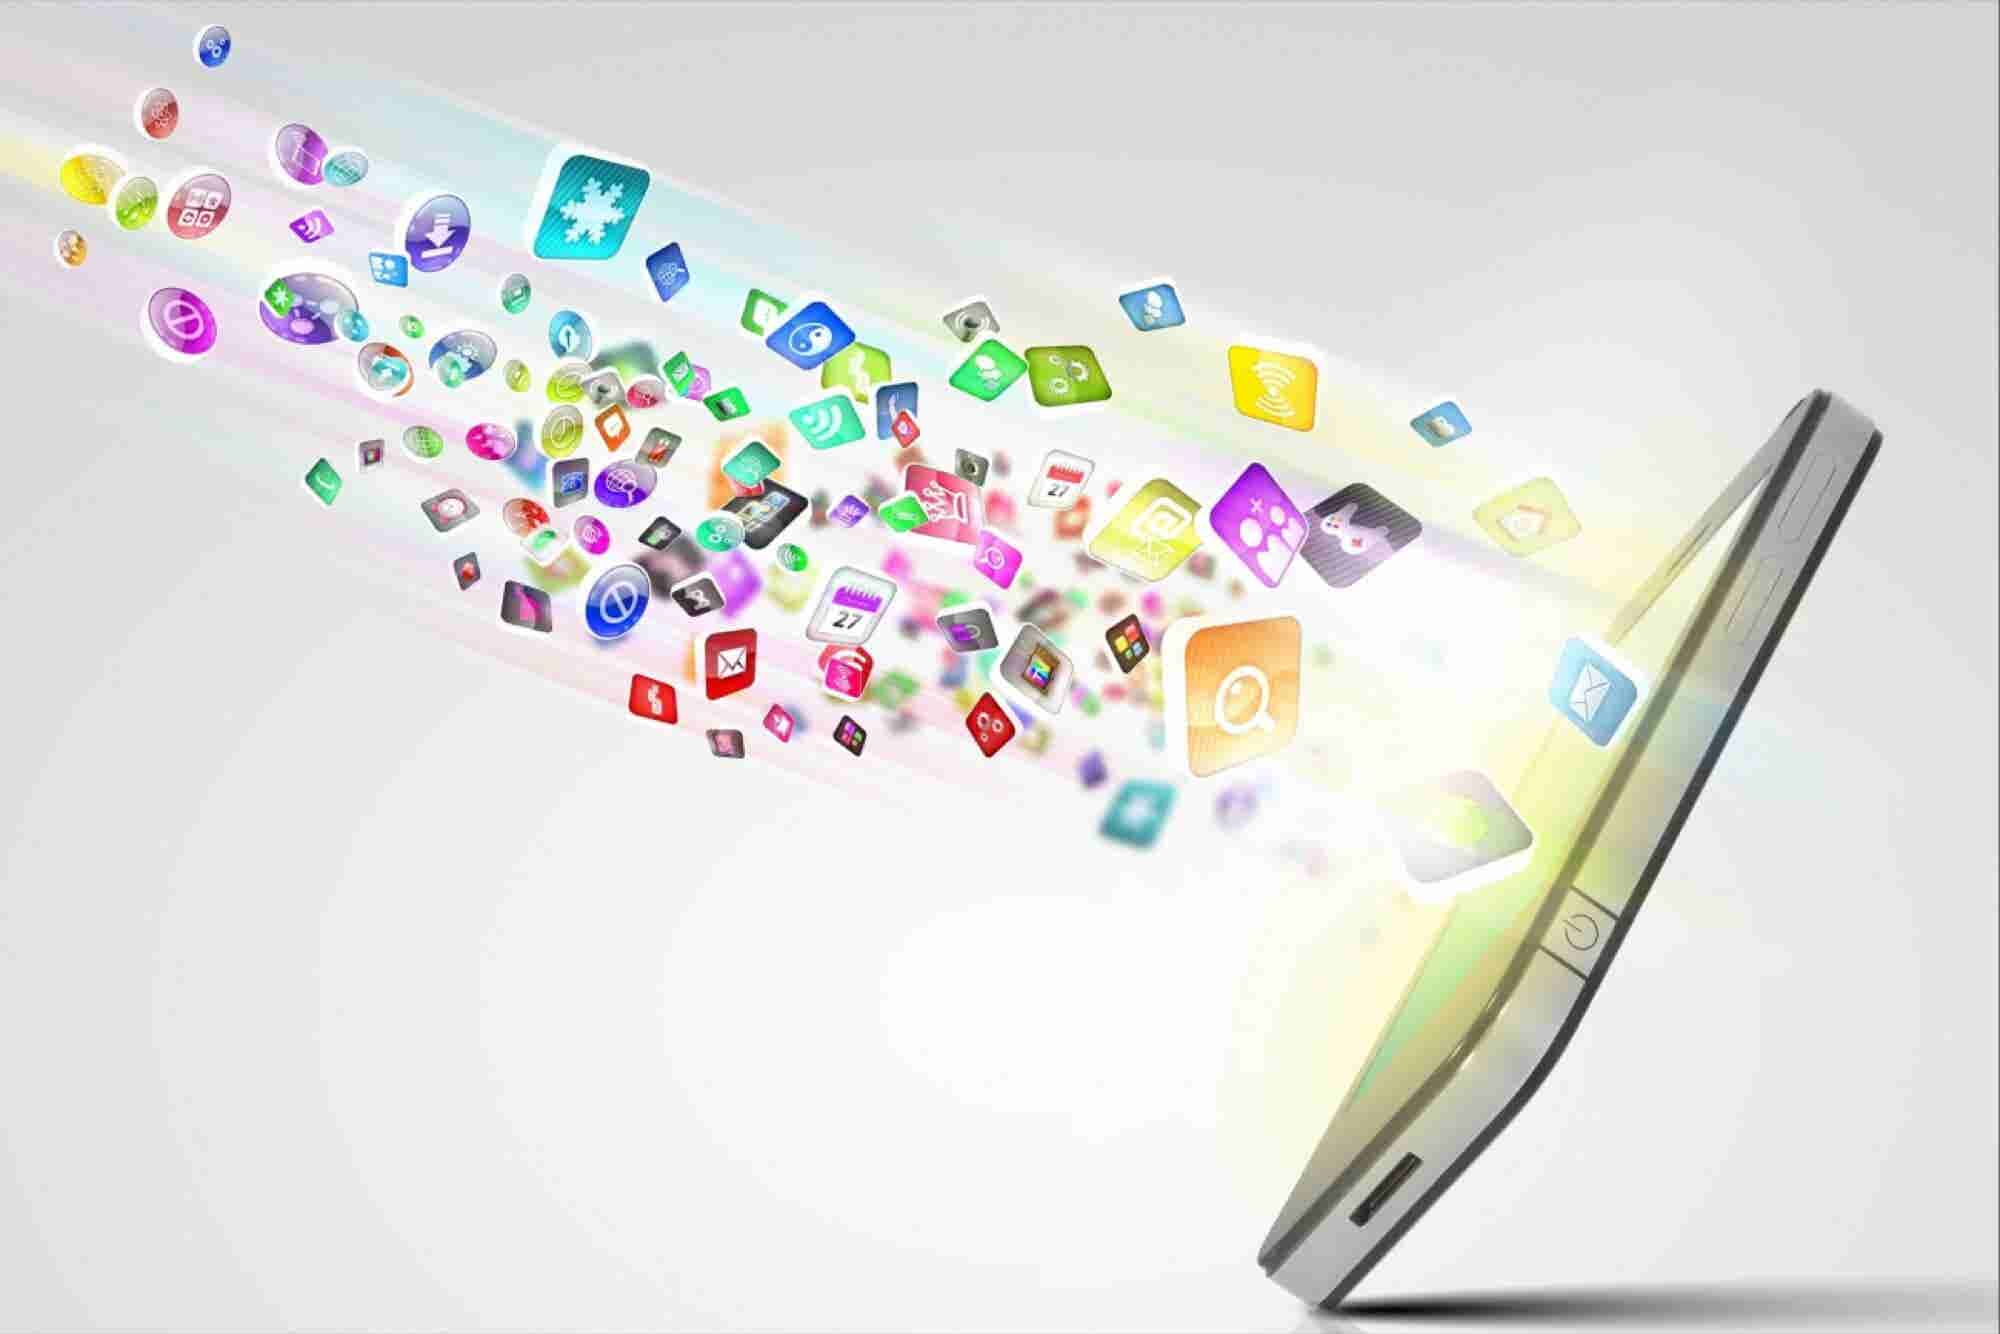 The Investor's View: Is The App Boom Over?